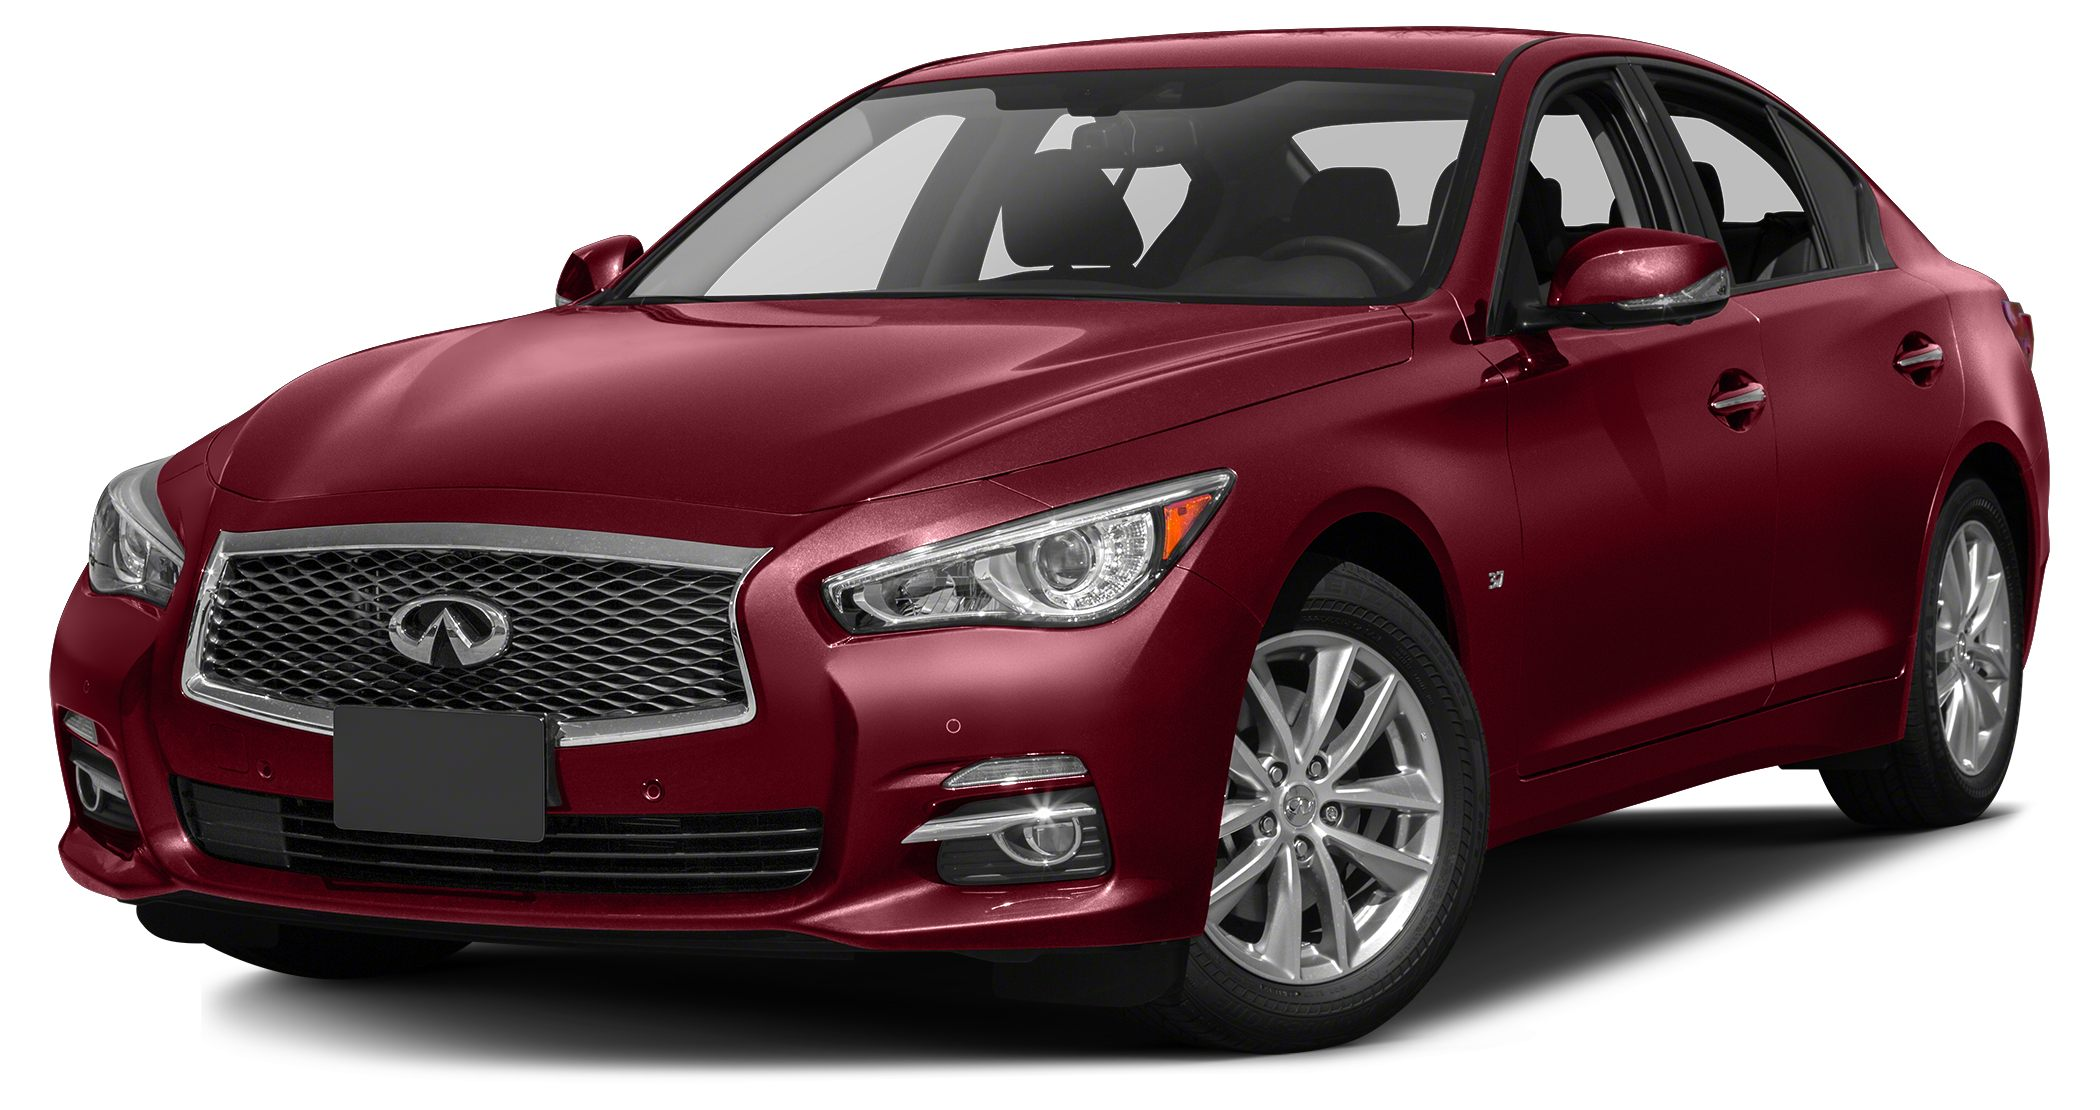 2014 Infiniti Q50 Premium Visit Best Auto Group online at bronxbestautocom to see more pictures o